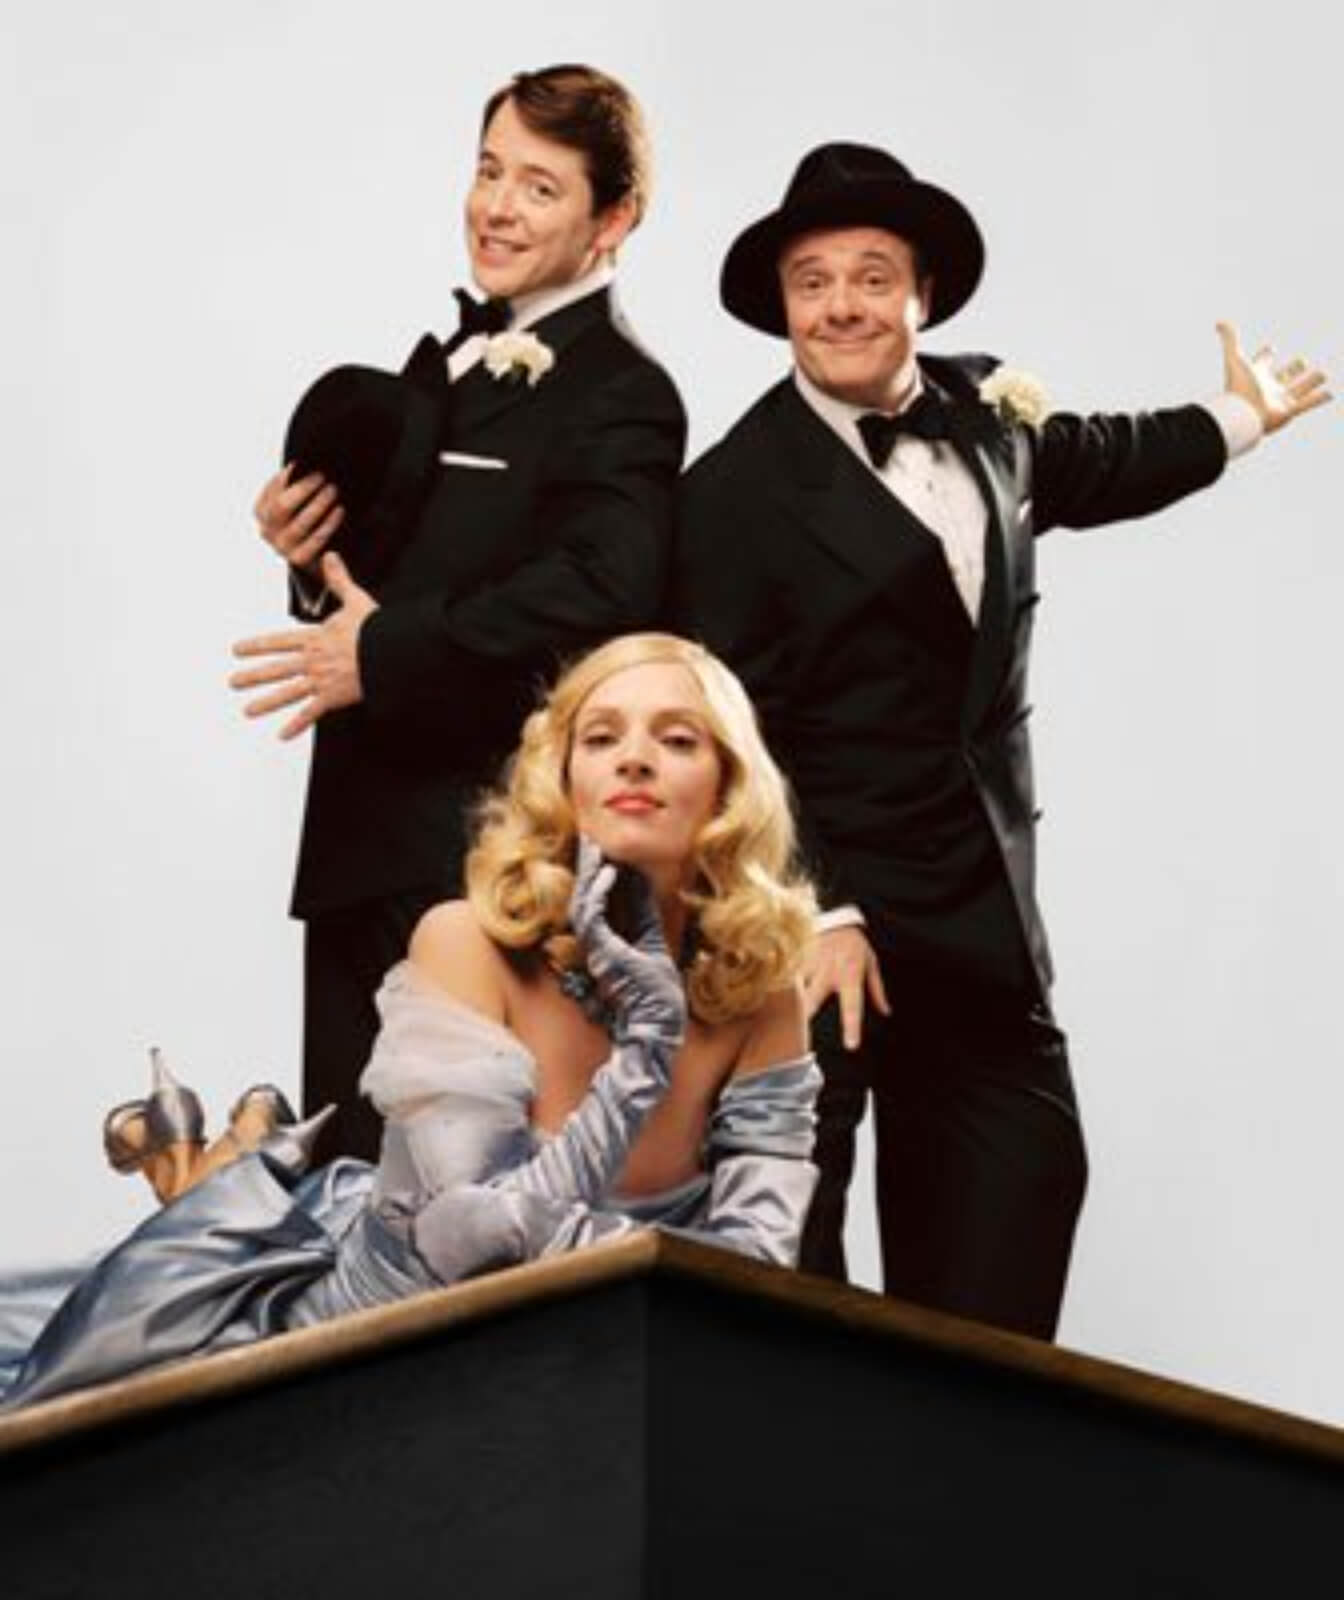 Leo Bloom (Matthew Broderick), Ulla (Uma Thurman) and Max Bialystock (Nathan Lane). They are posing with joy on top of the theatre.